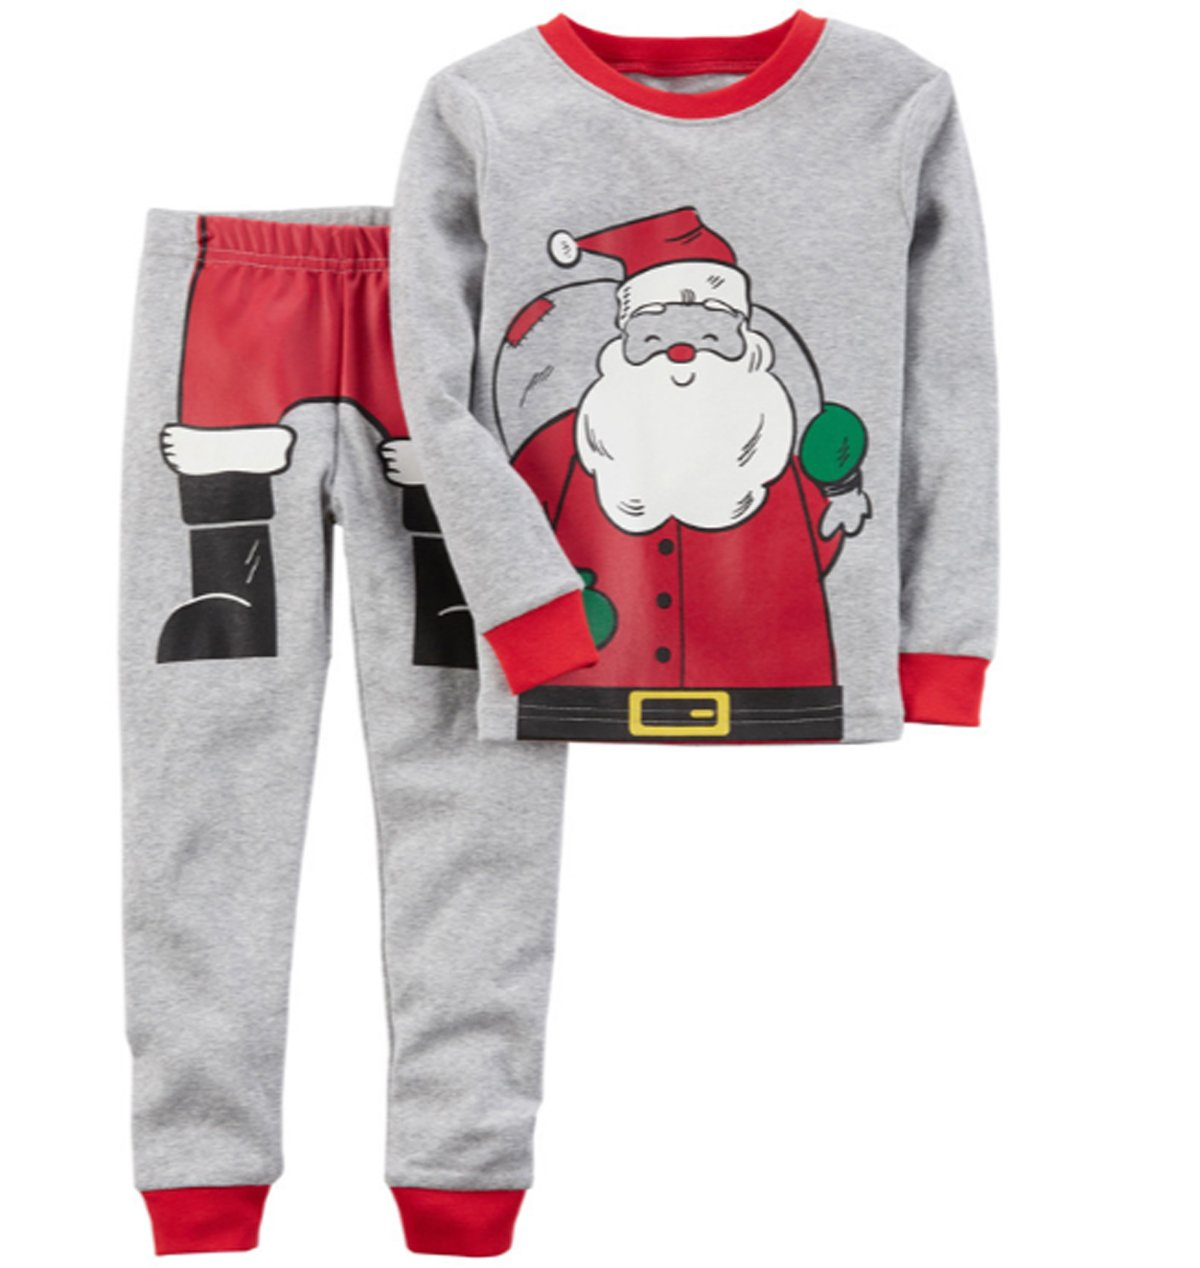 Little Boys Pajamas Sets For Christmas Santa Claus 100% Cotton Clothes Toddler Kid Nightgown